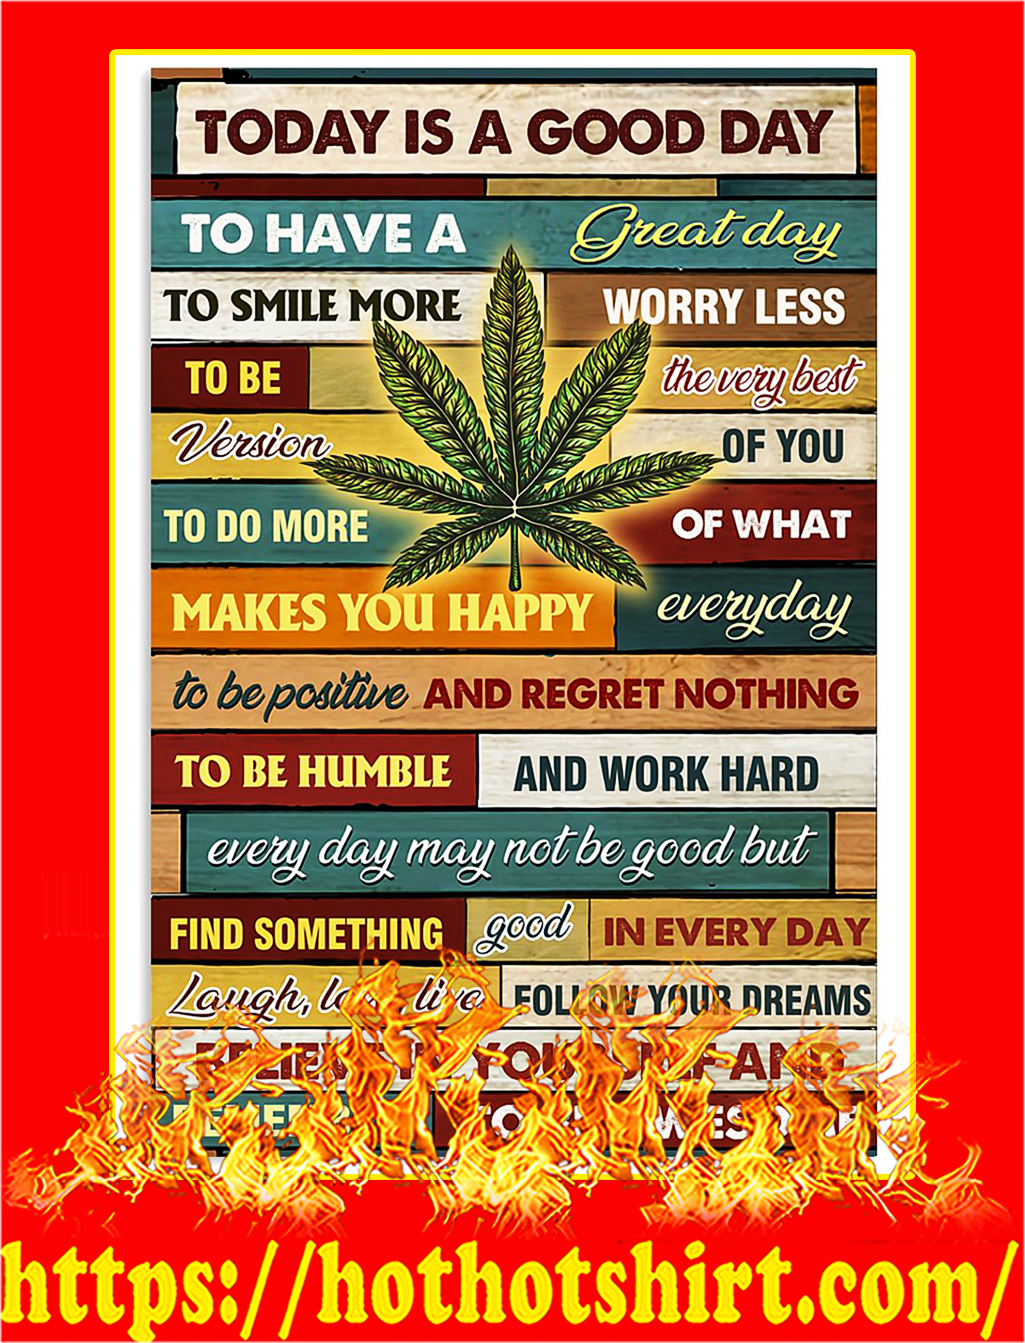 Weed cannabis today is a good day poster - A3